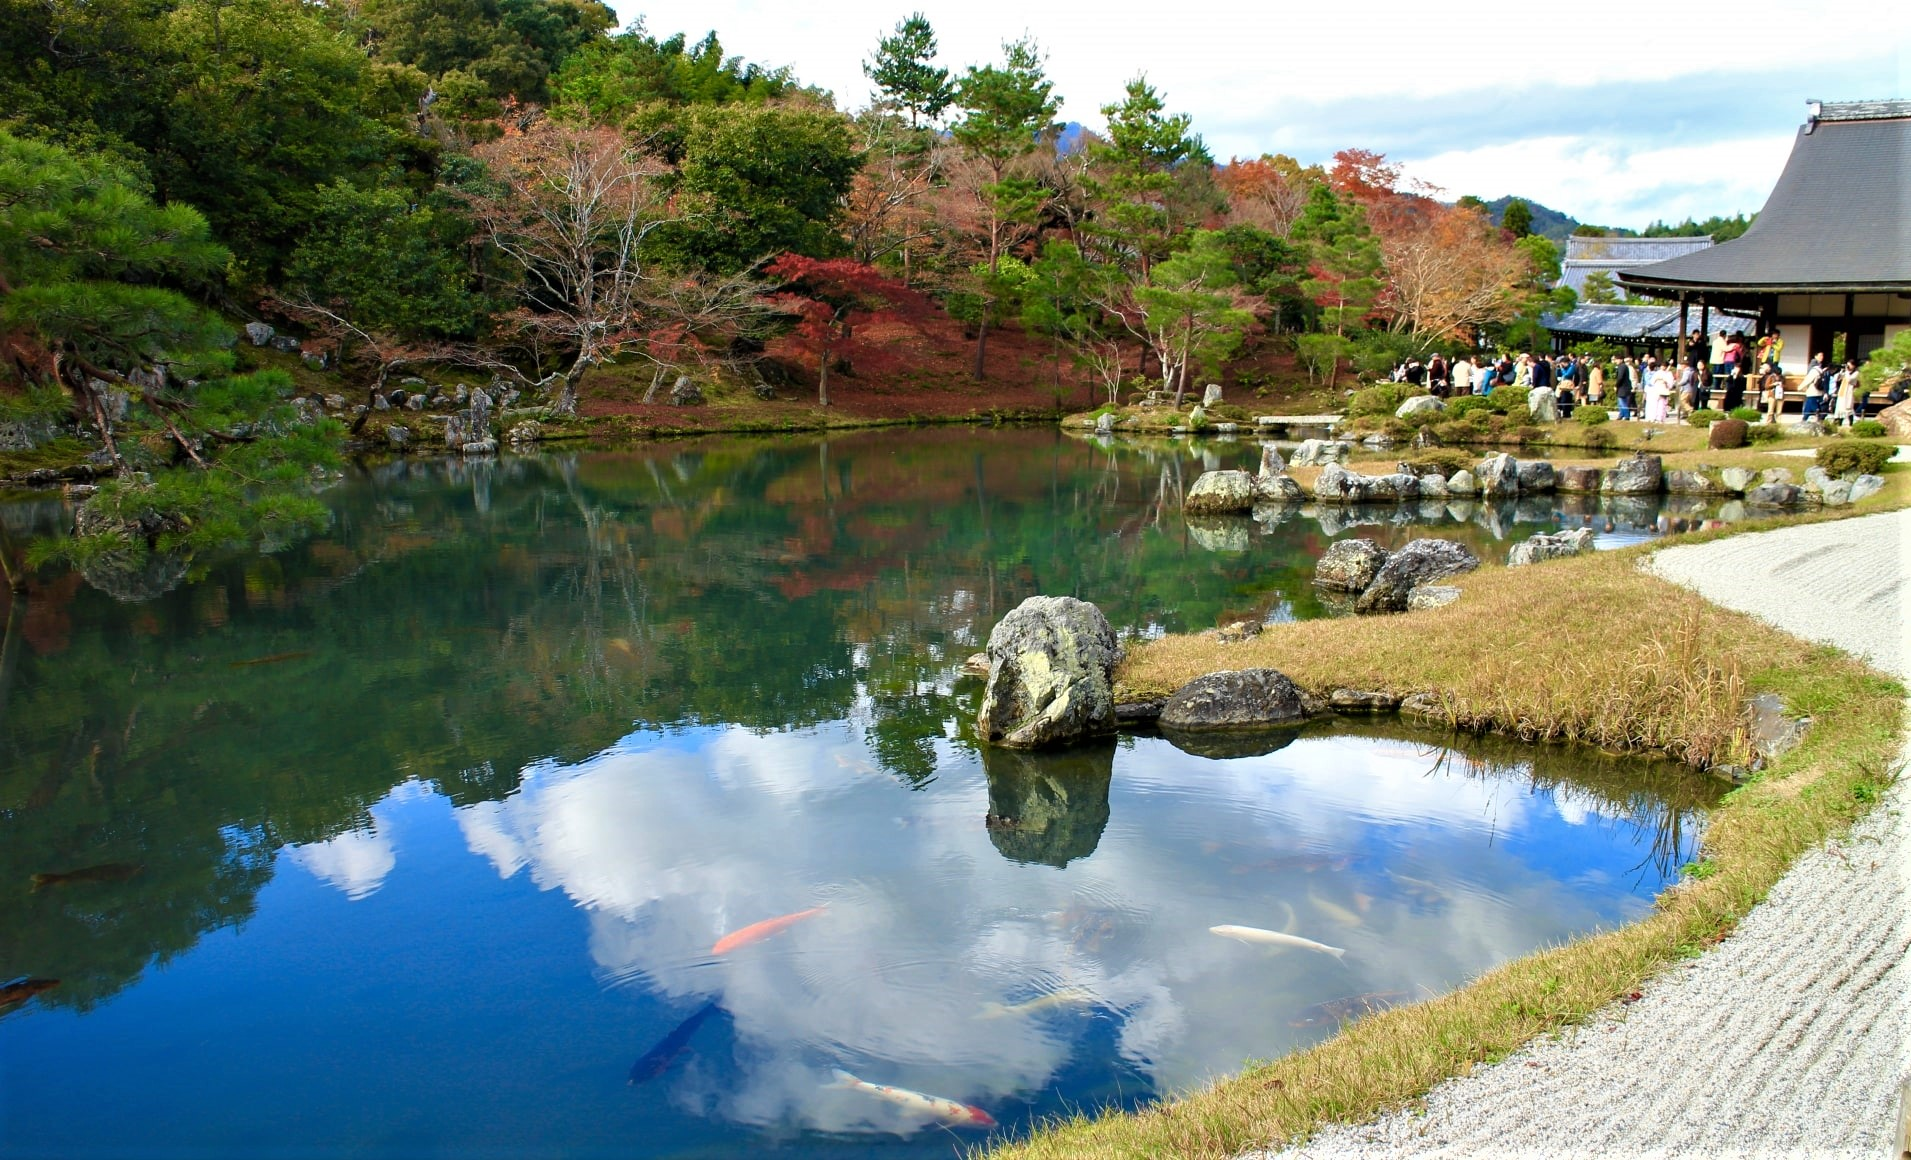 The landscape garden with pond at Tenryuji Temple